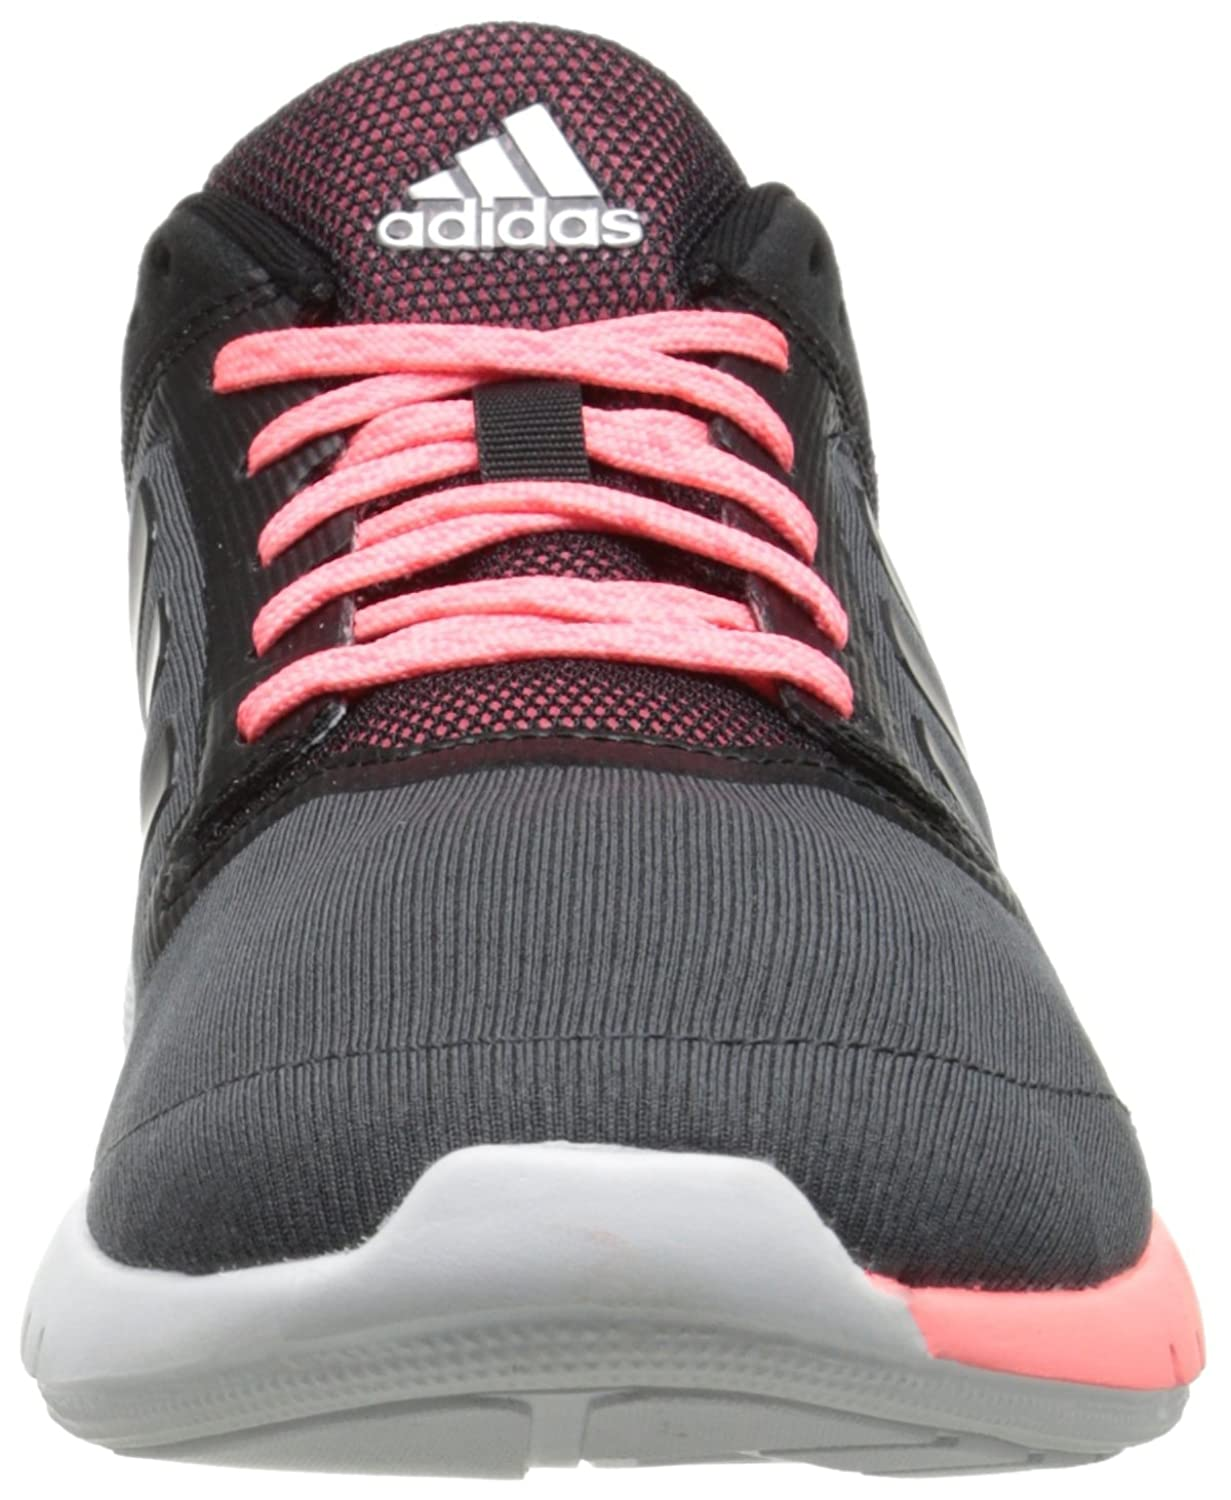 adidas climacool fresh 2 women's leisure shoes